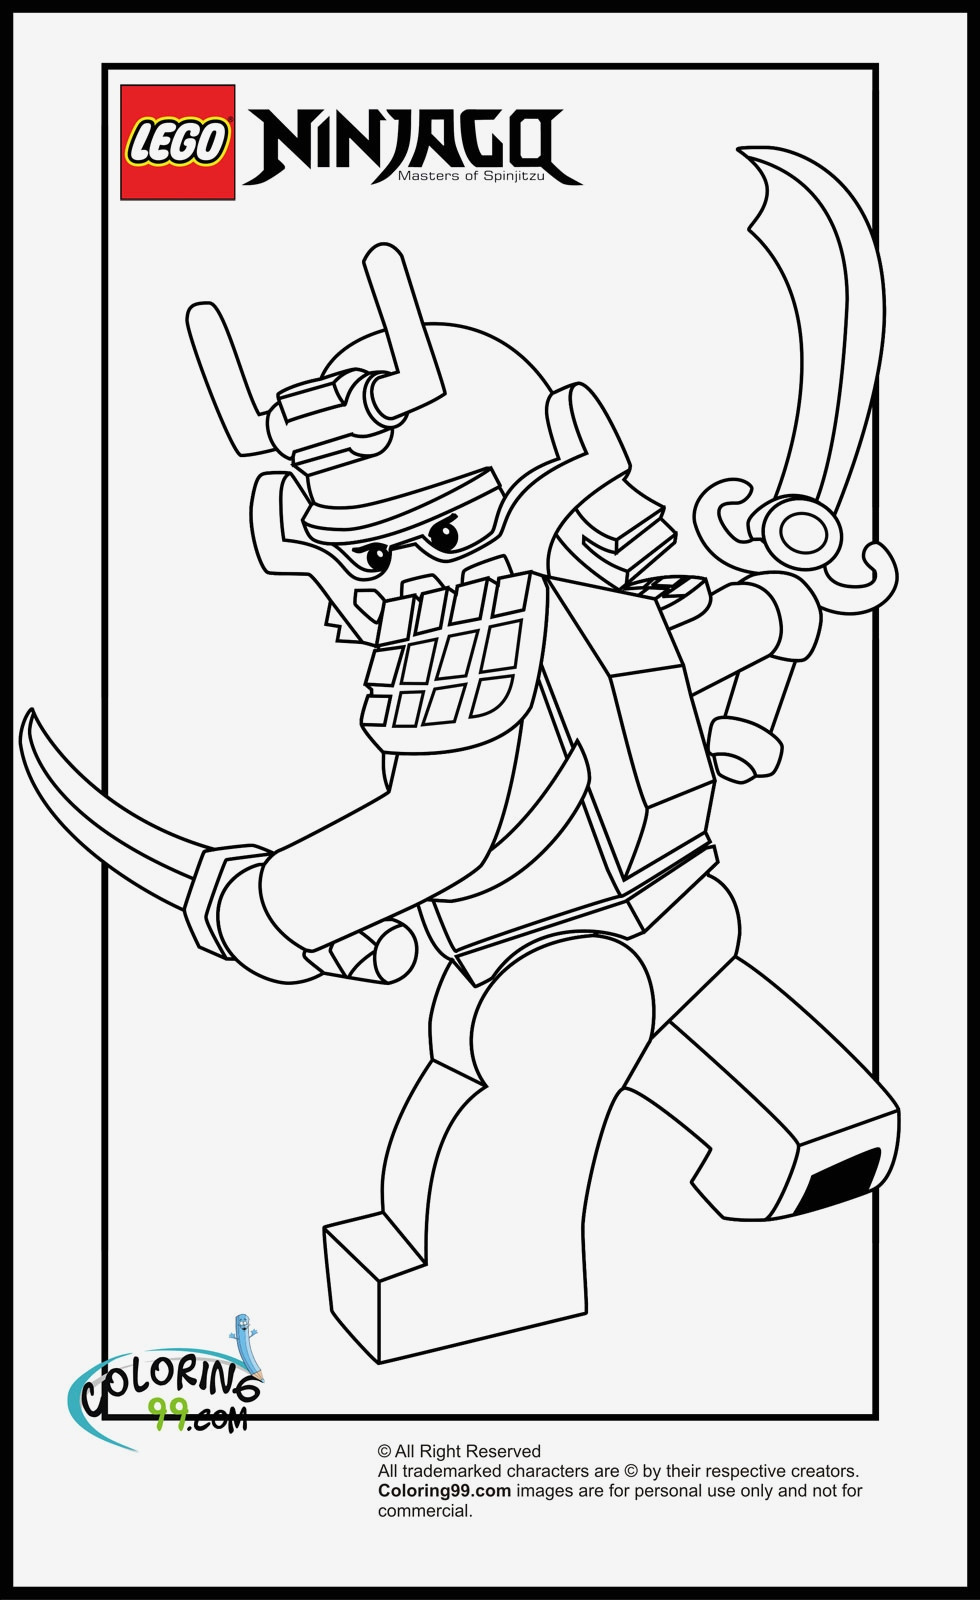 Ninjago Lloyd Bilder Inspirierend Ninjago Coloring Sheets Coloring & Activity 38 Coloring Pages for Galerie